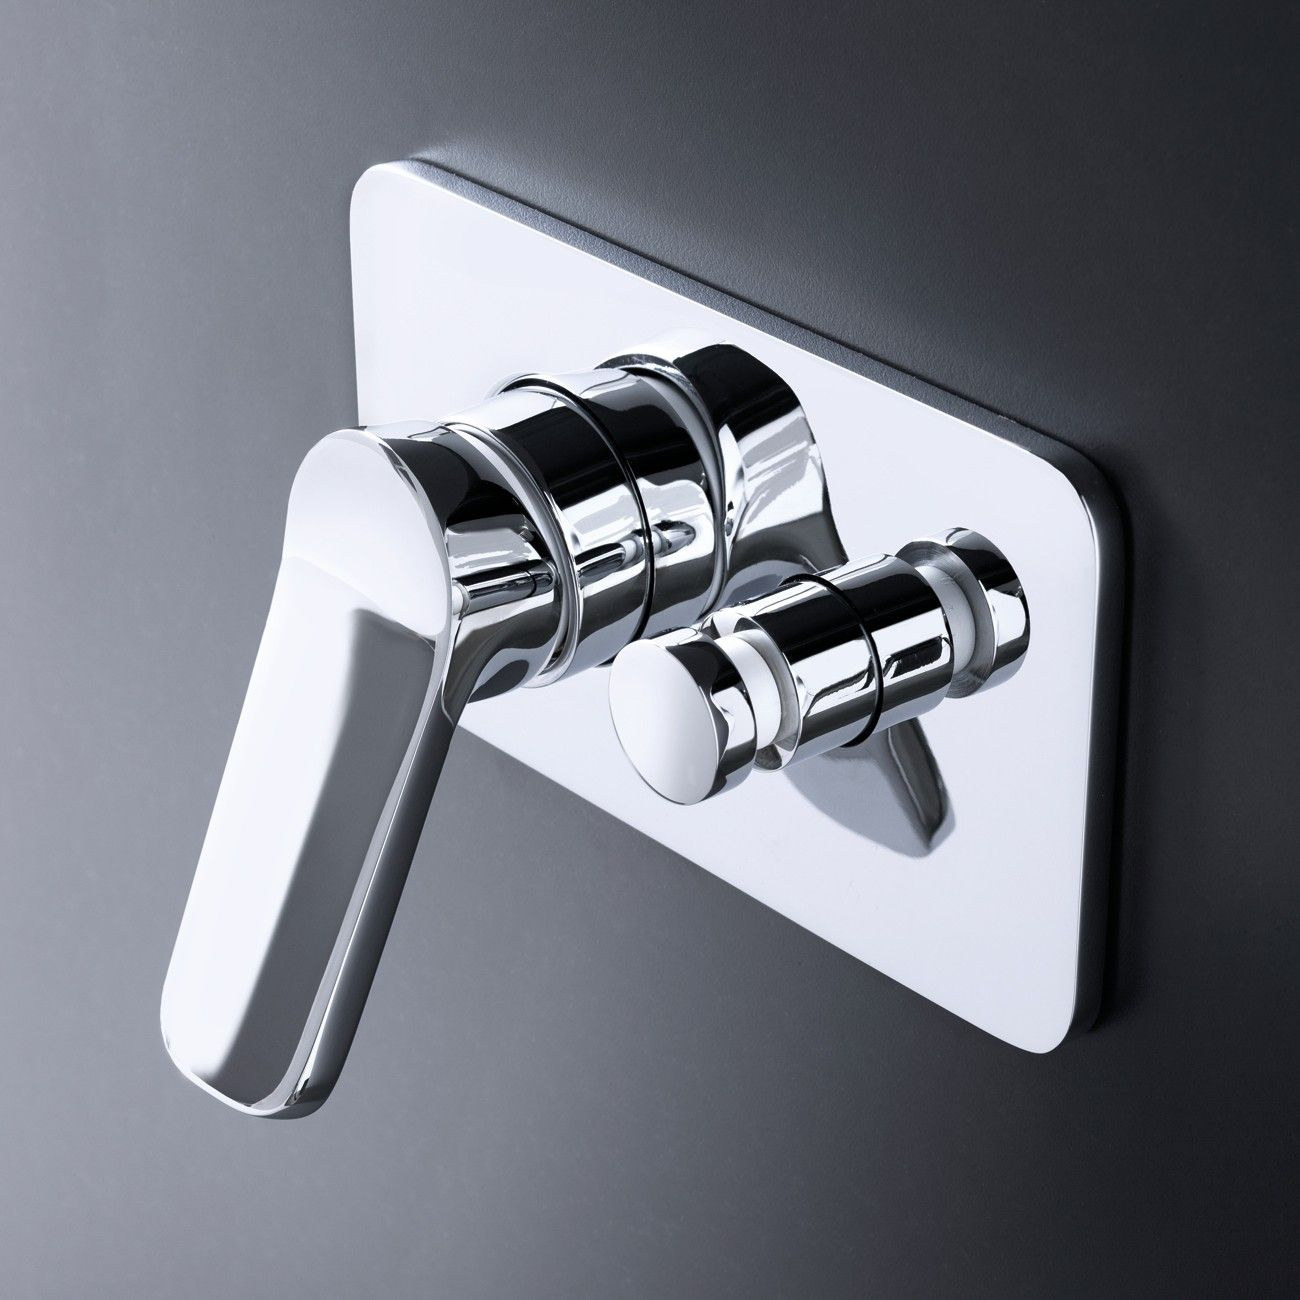 Fantini Levante Wall Mixer With Holder Rogerseller Bath  # Muebles Fantini